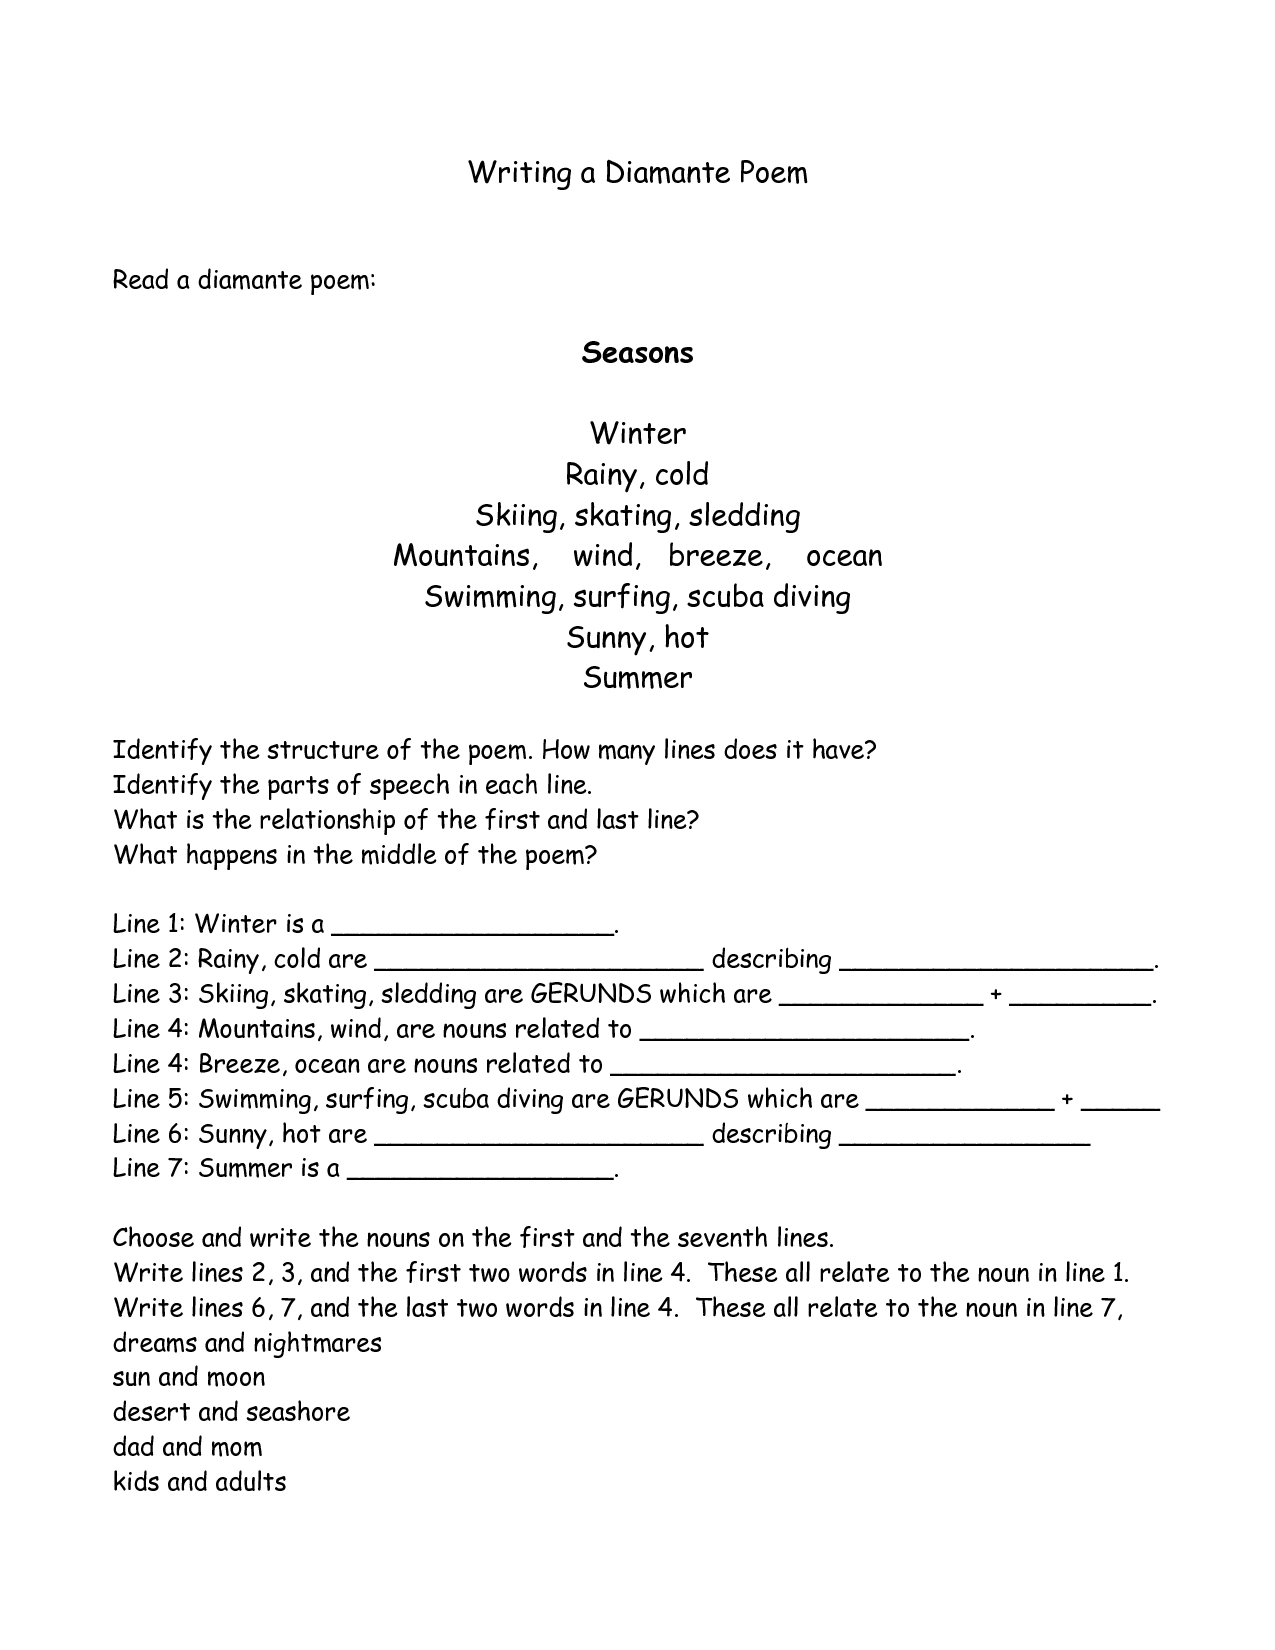 19 Best Images Of Diamante Poetry Worksheets